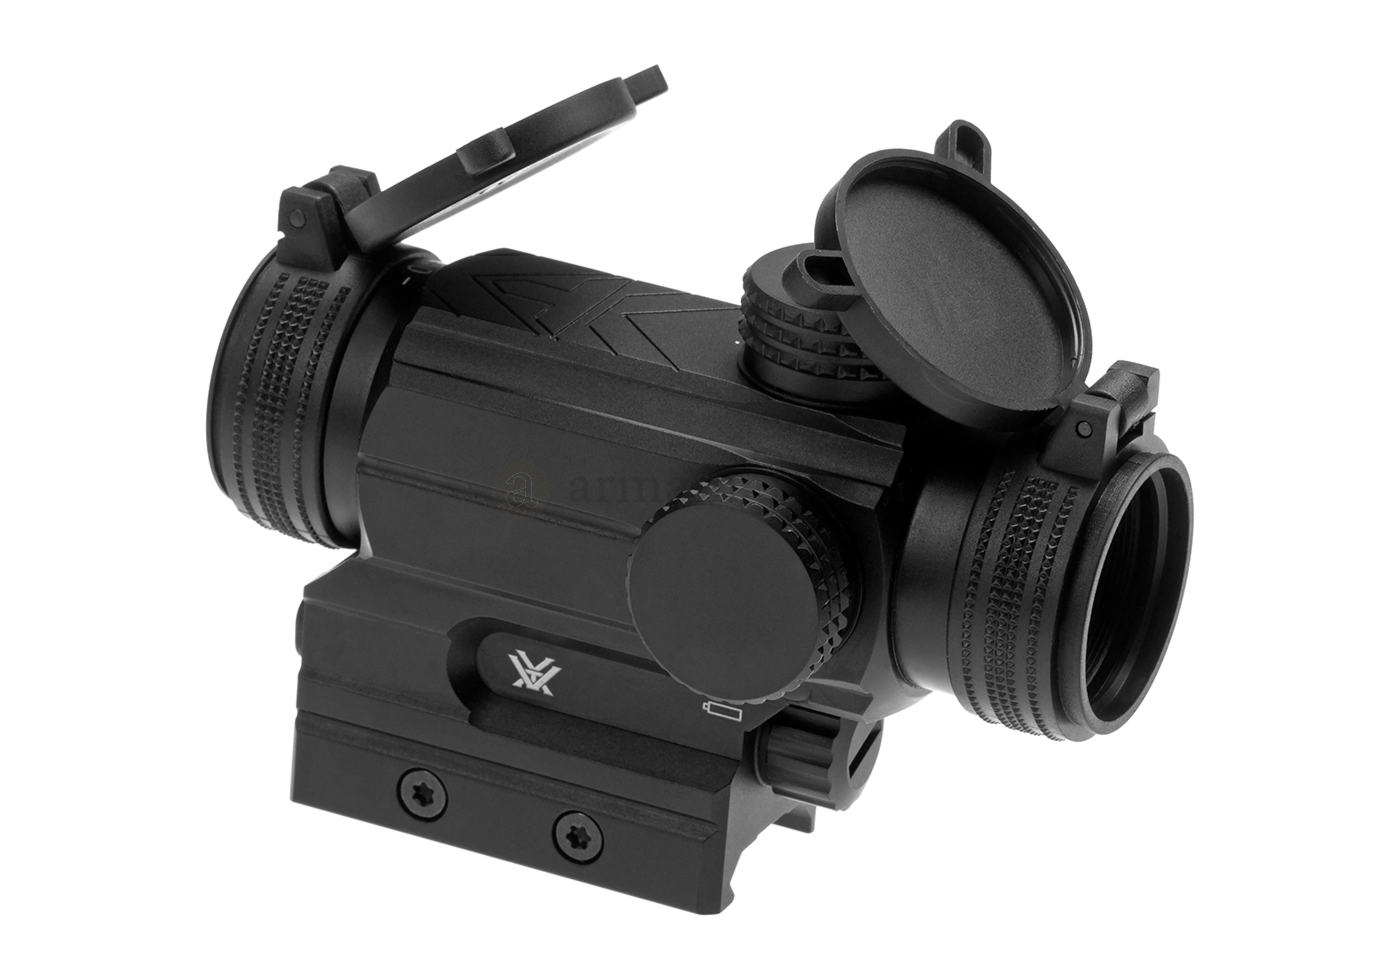 Kolimátor Vortex Spitfire 1x AR Prism Scope